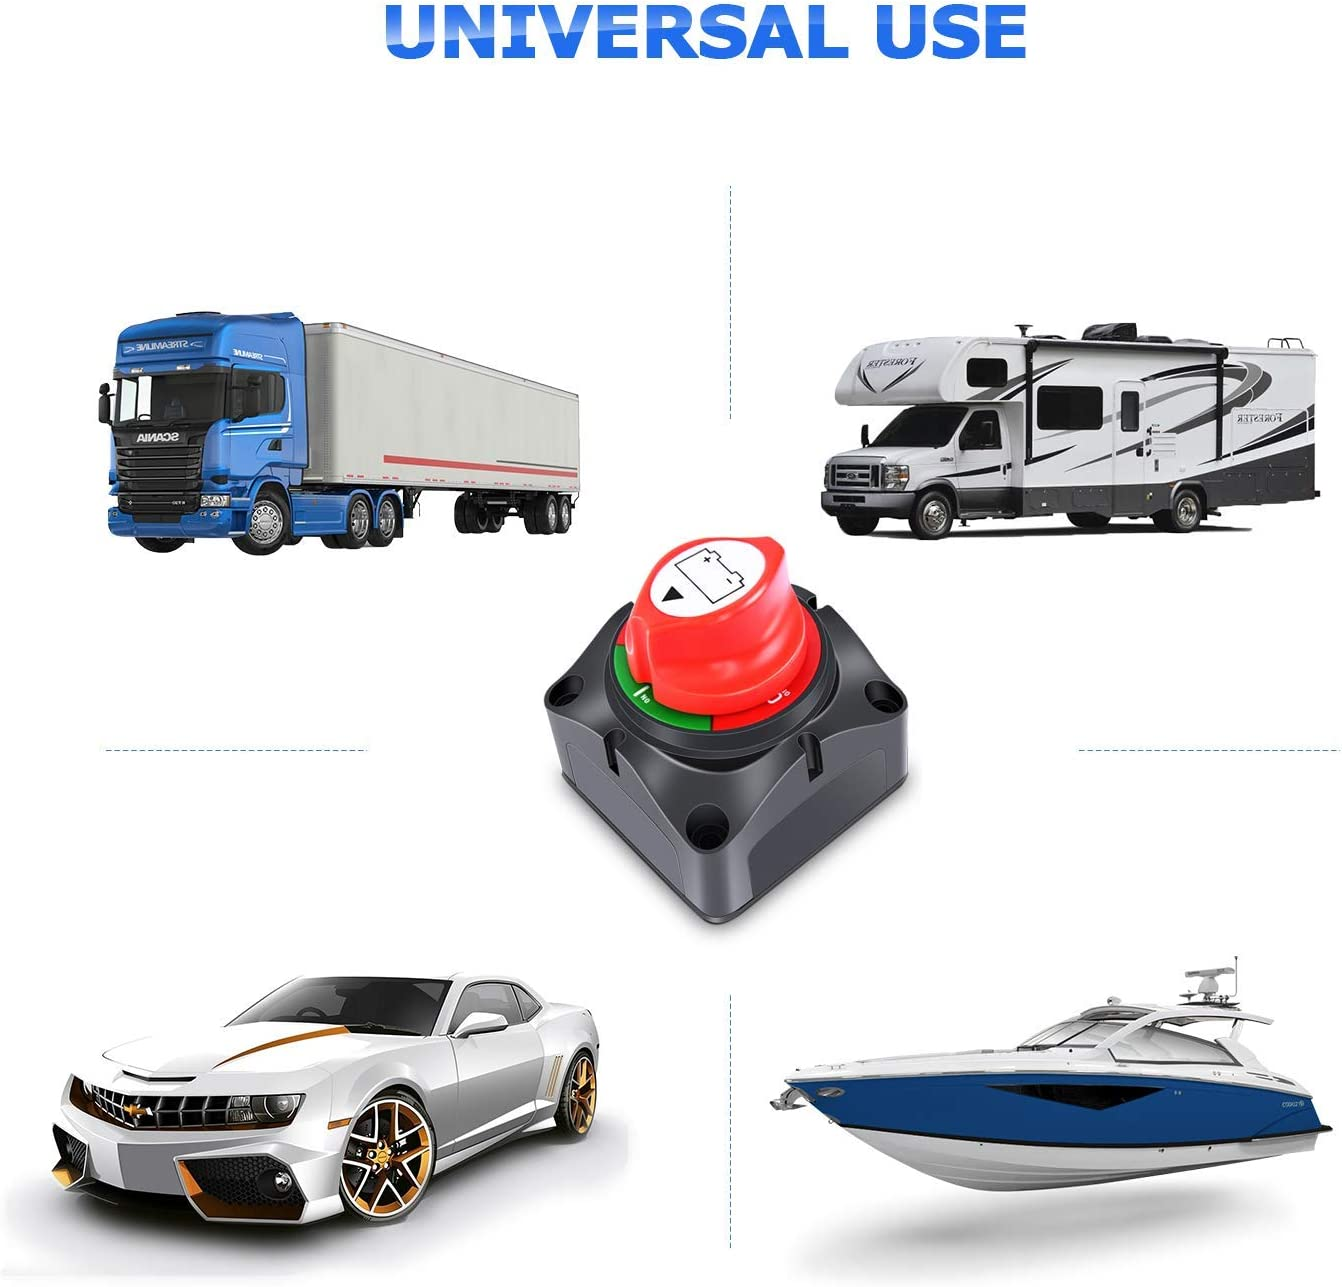 Gebildet 12V//24V 300A Battery Isolator Disconnect Switch,Battery Cut Off Switch For RV Yacht Boat Truck Bus Motorcycle Car